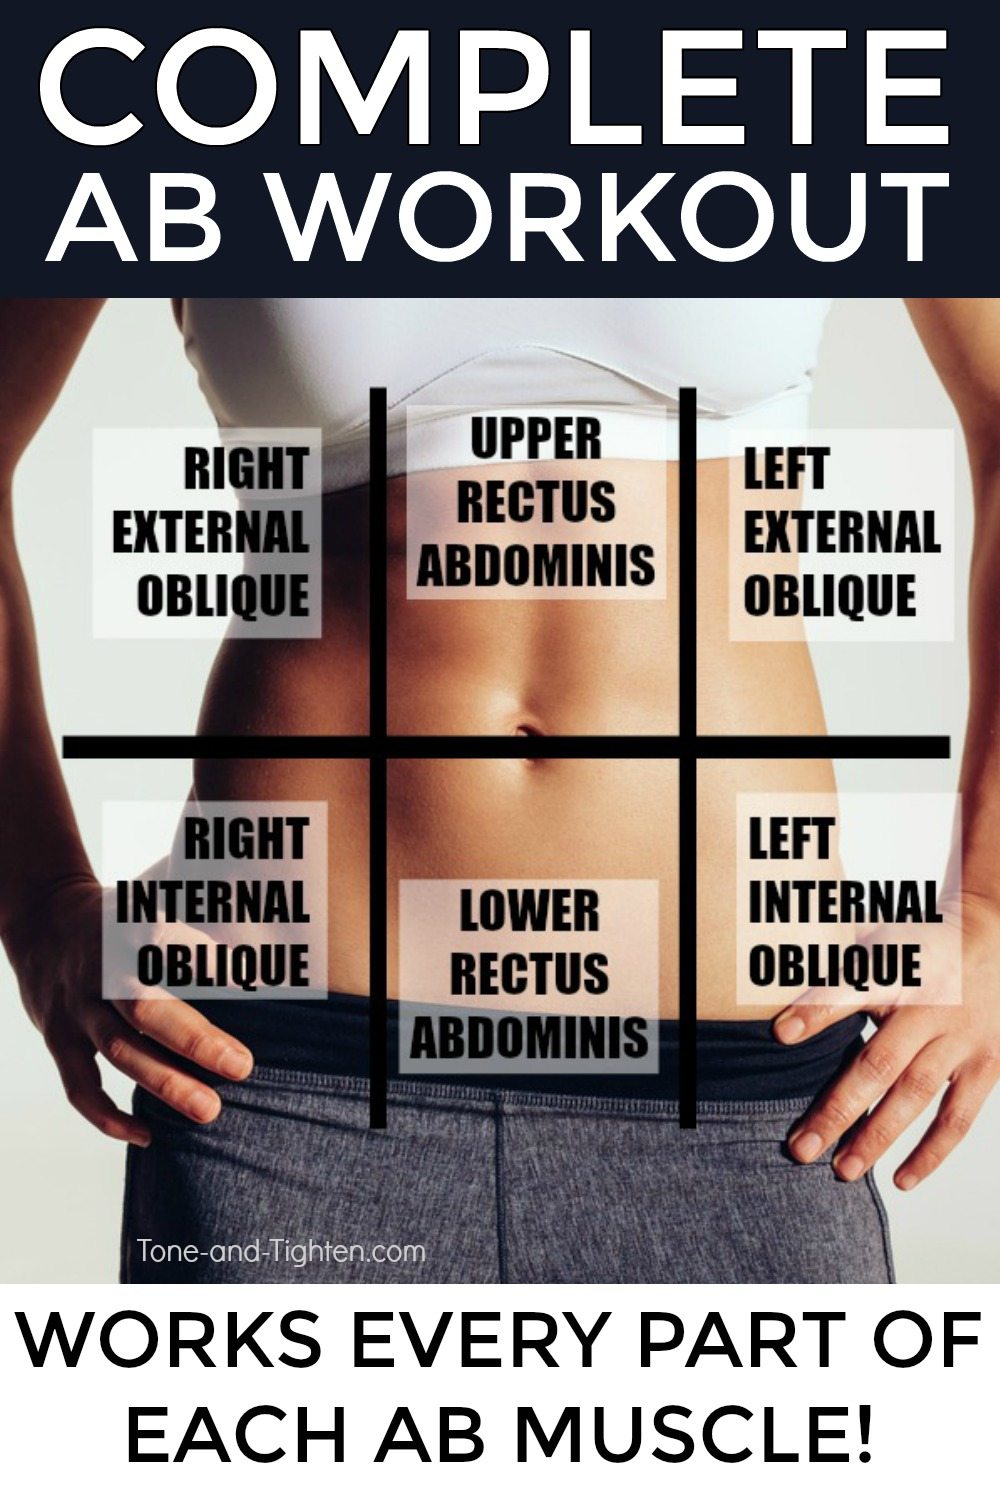 Complete ab workout at home! Workout and tips to take your abs to the next level from Tone-and-Tighten.com